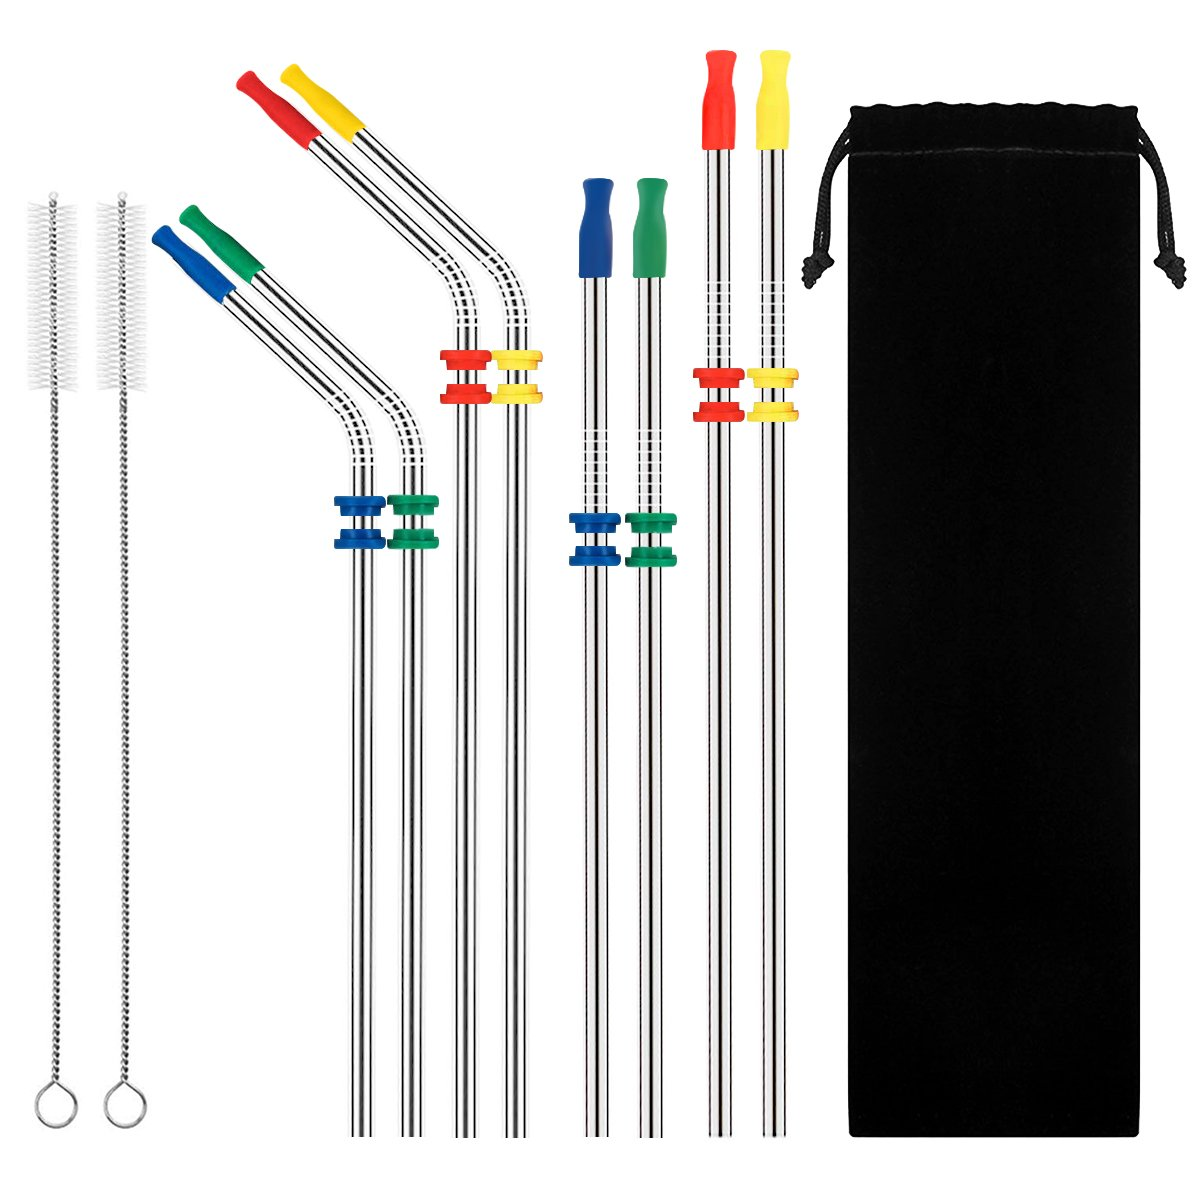 10.5'' Kimyer Stainless Steel Metal Drinking Straws,Fits Yeti RTIC or Any 20 or 30 oz Tumbler, Reusable Ecofriendly with 8 Colors Silicone Silencers and Comfort Tips Cover